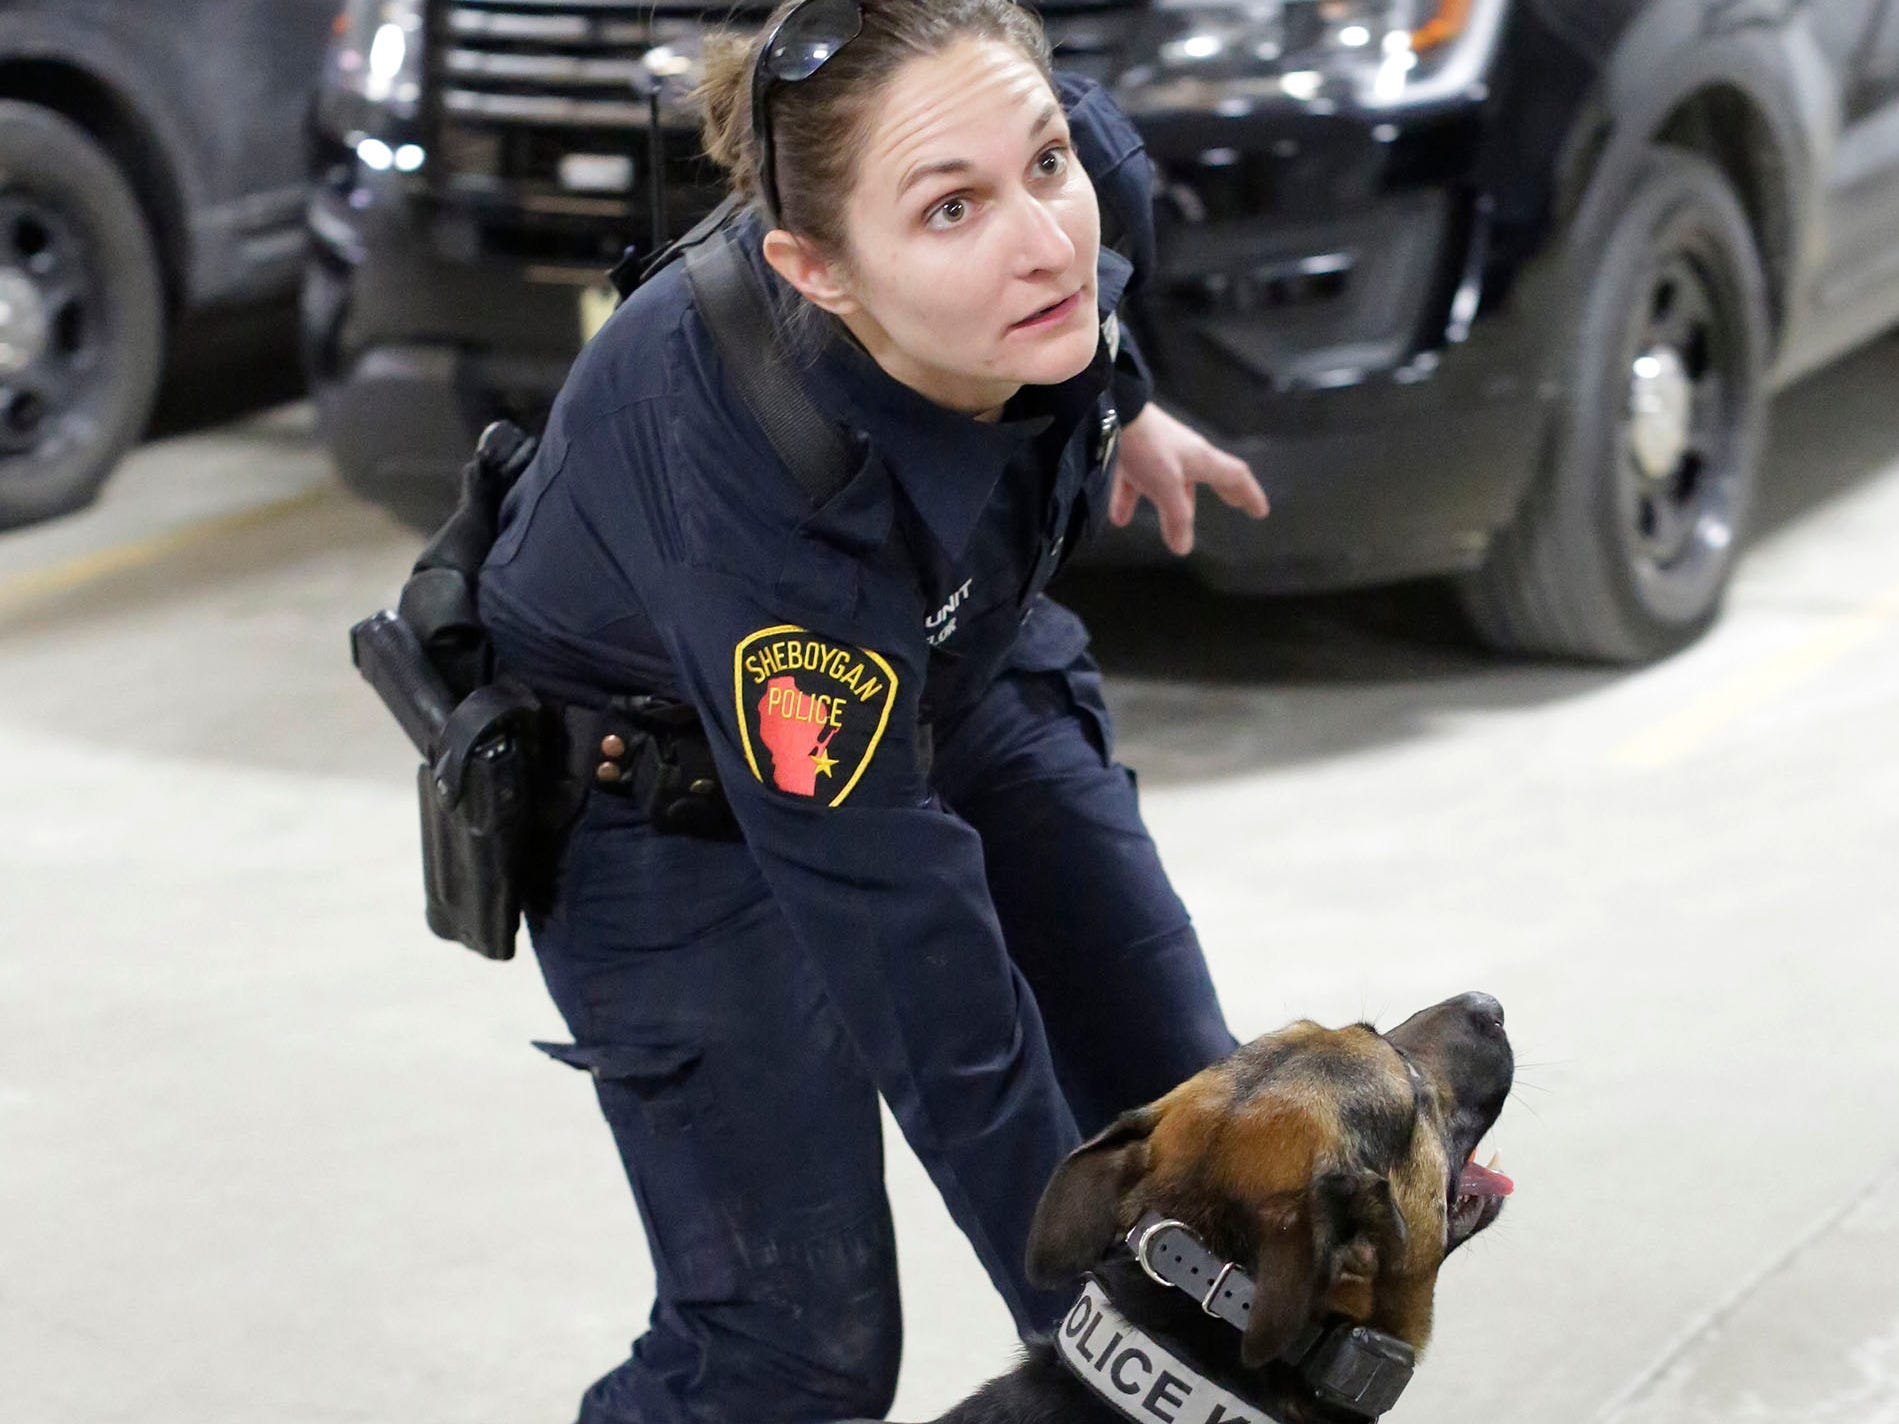 Sheboygan Officer Anna Taylor looks up while working on training with police dog Max, Wednesday, March 6, 2019, in Sheboygan, Wis. According to Taylor, a ball is his reward for doing his job.